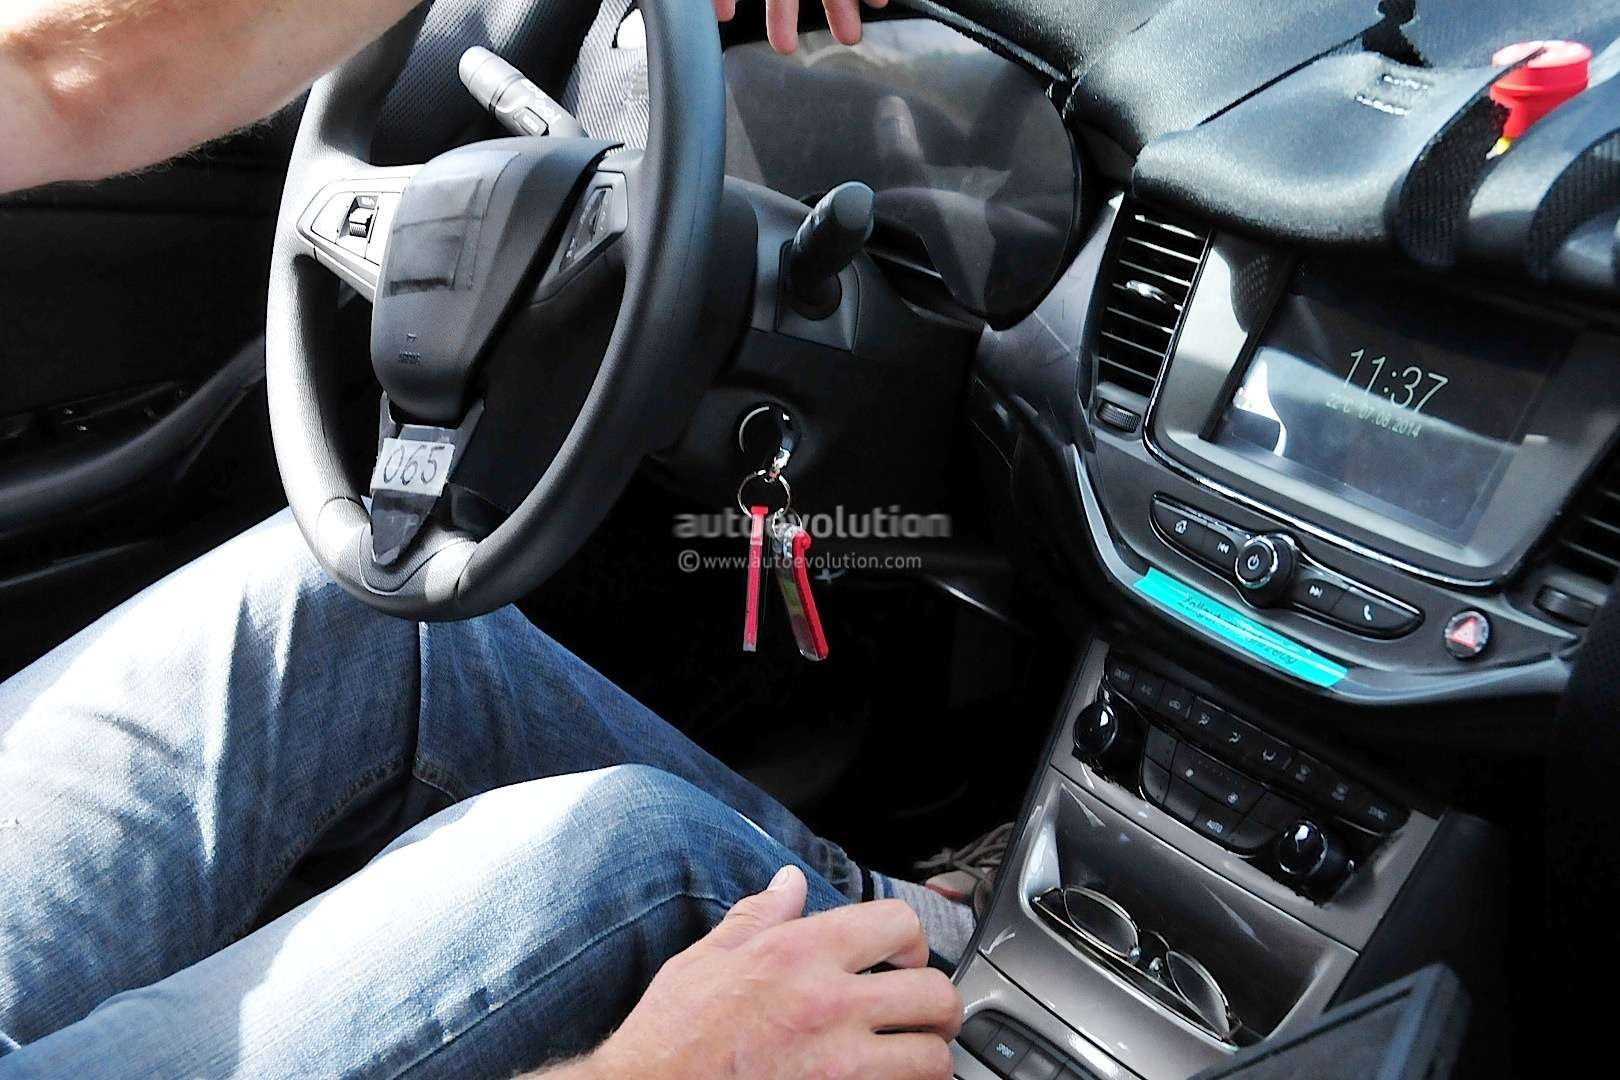 20150323_20150120_20140818_new_opel_astra_dashboard_revealed_in_latest_spyshots_5